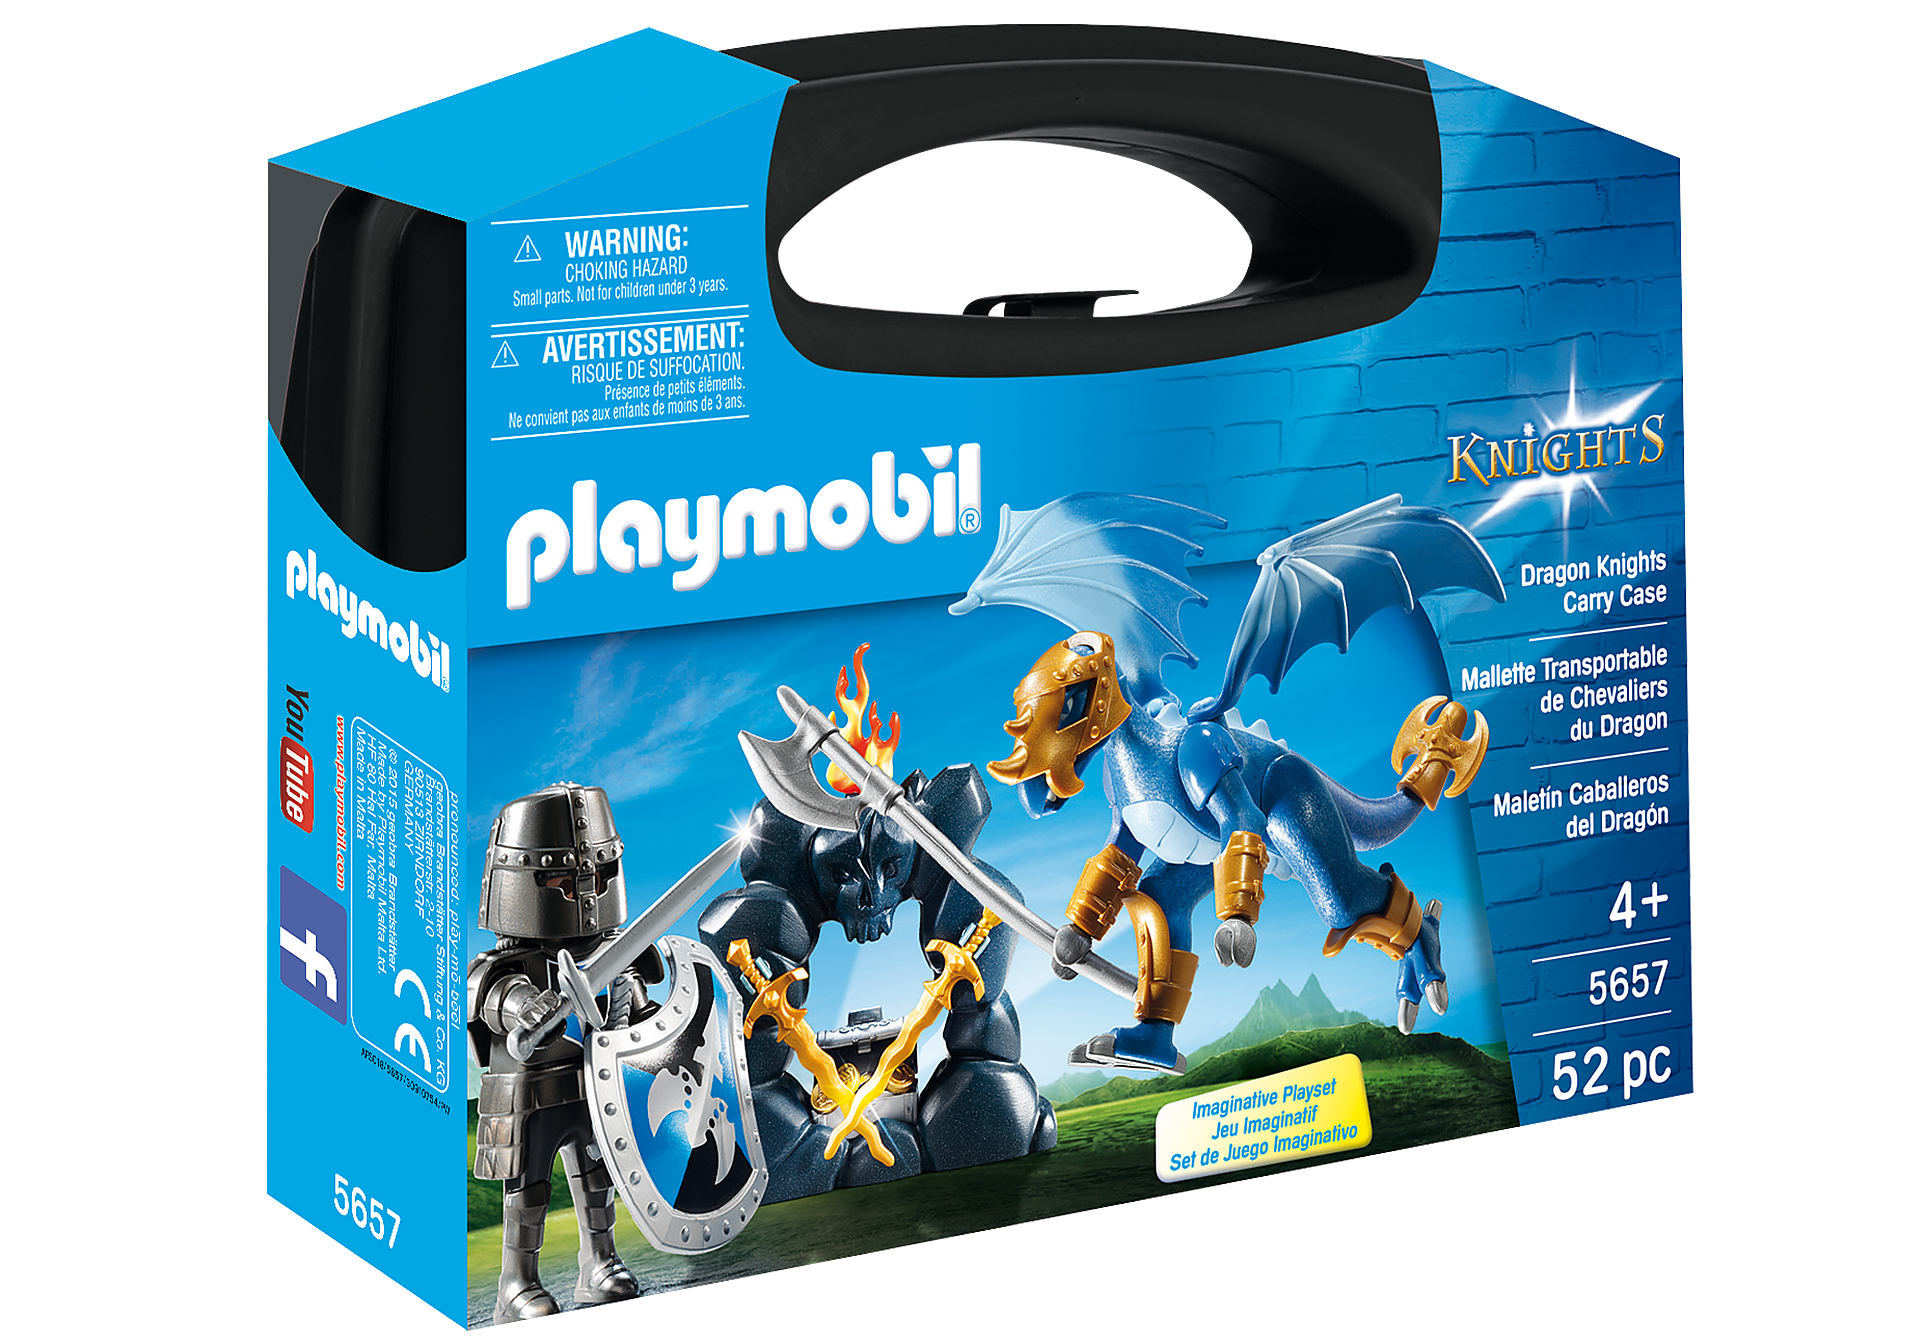 http://media.playmobil.com/i/playmobil/5657_product_box_front/Dragon Knights Carry Case